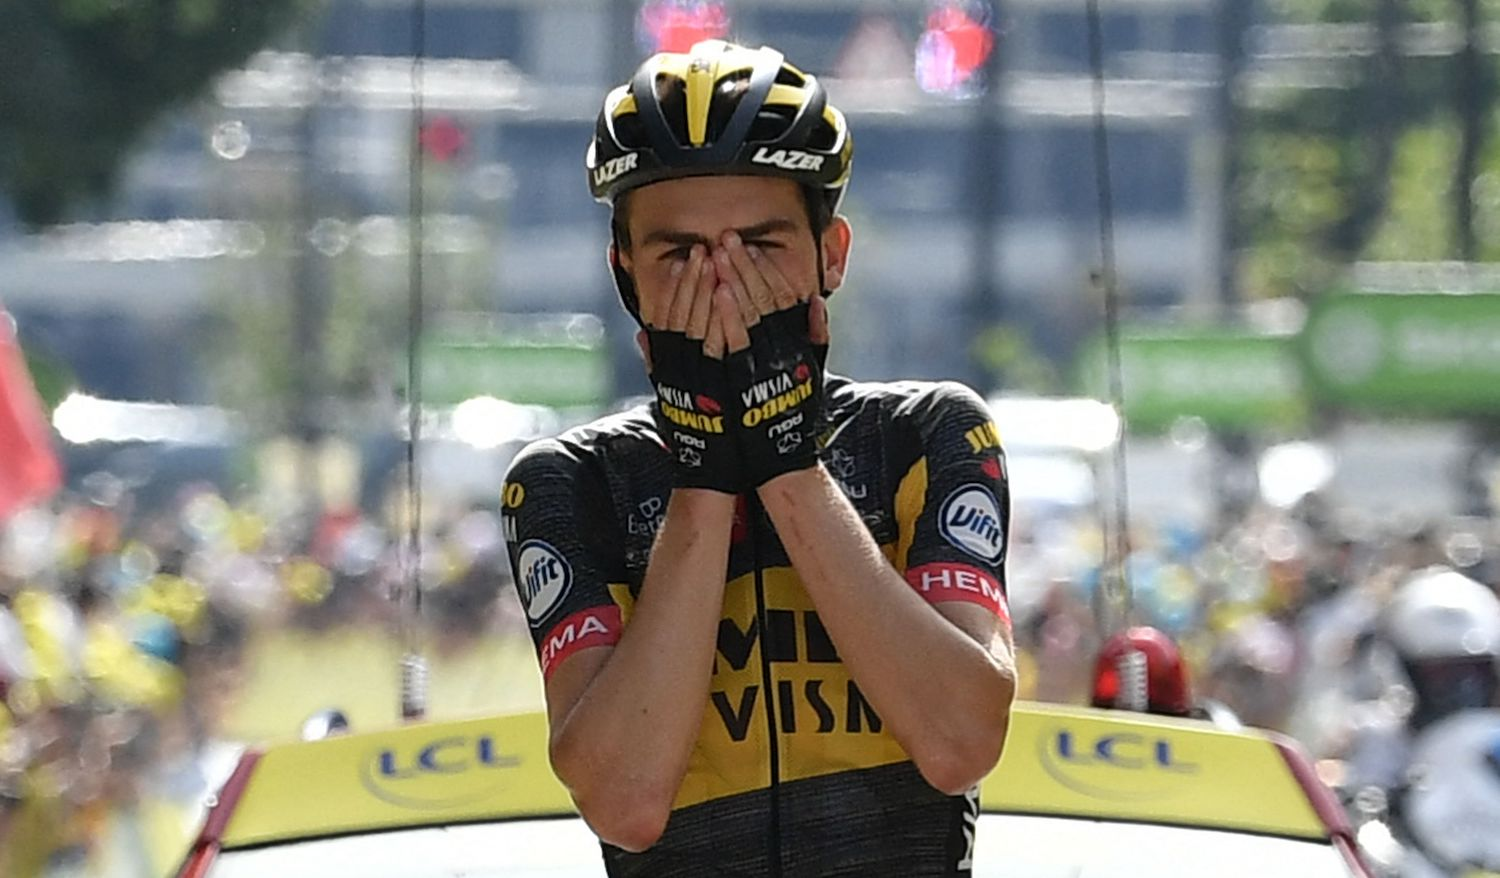 TOPSHOT - Team Jumbo Visma's Sepp Kuss of US celebrates as he crosses the finish line of the 15th stage of the 108th edition of the Tour de France cycling race, 191 km between Ceret and Andorre-La-Vieille, on July 11, 2021. (Photo by Philippe LOPEZ / AFP) (Photo by PHILIPPE LOPEZ/AFP via Getty Images)